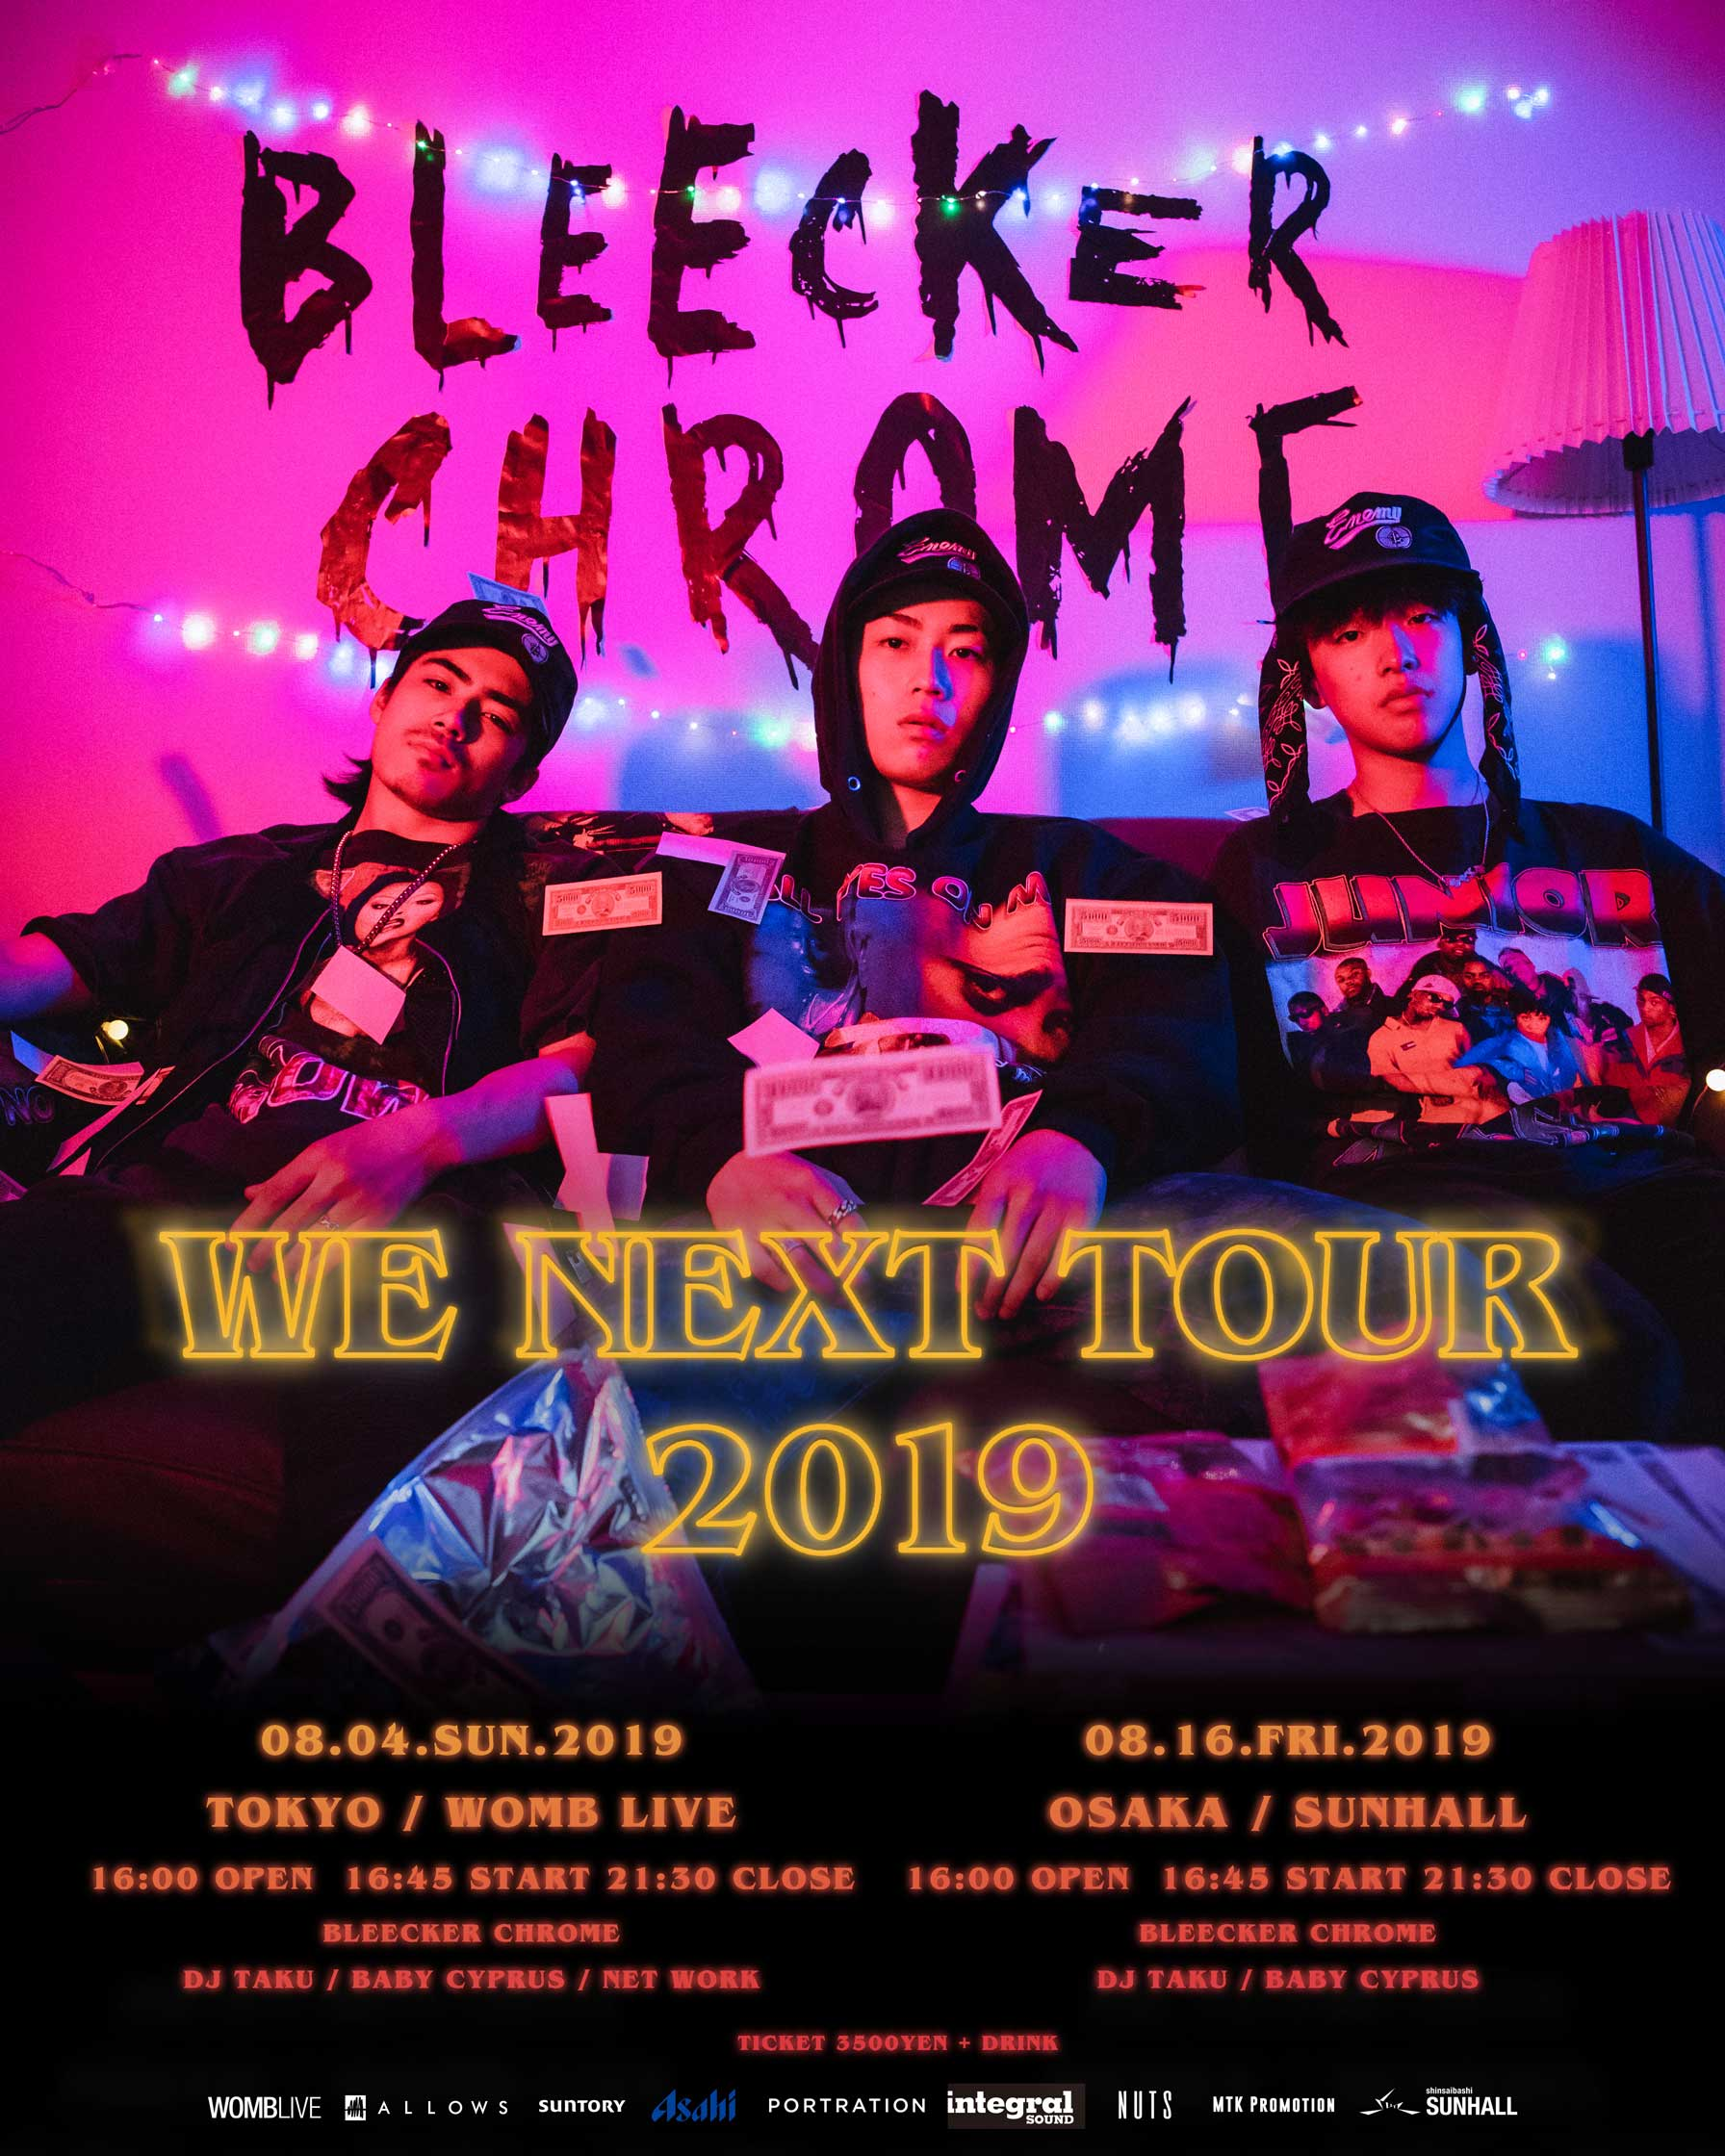 WE NEXT TOUR 2019